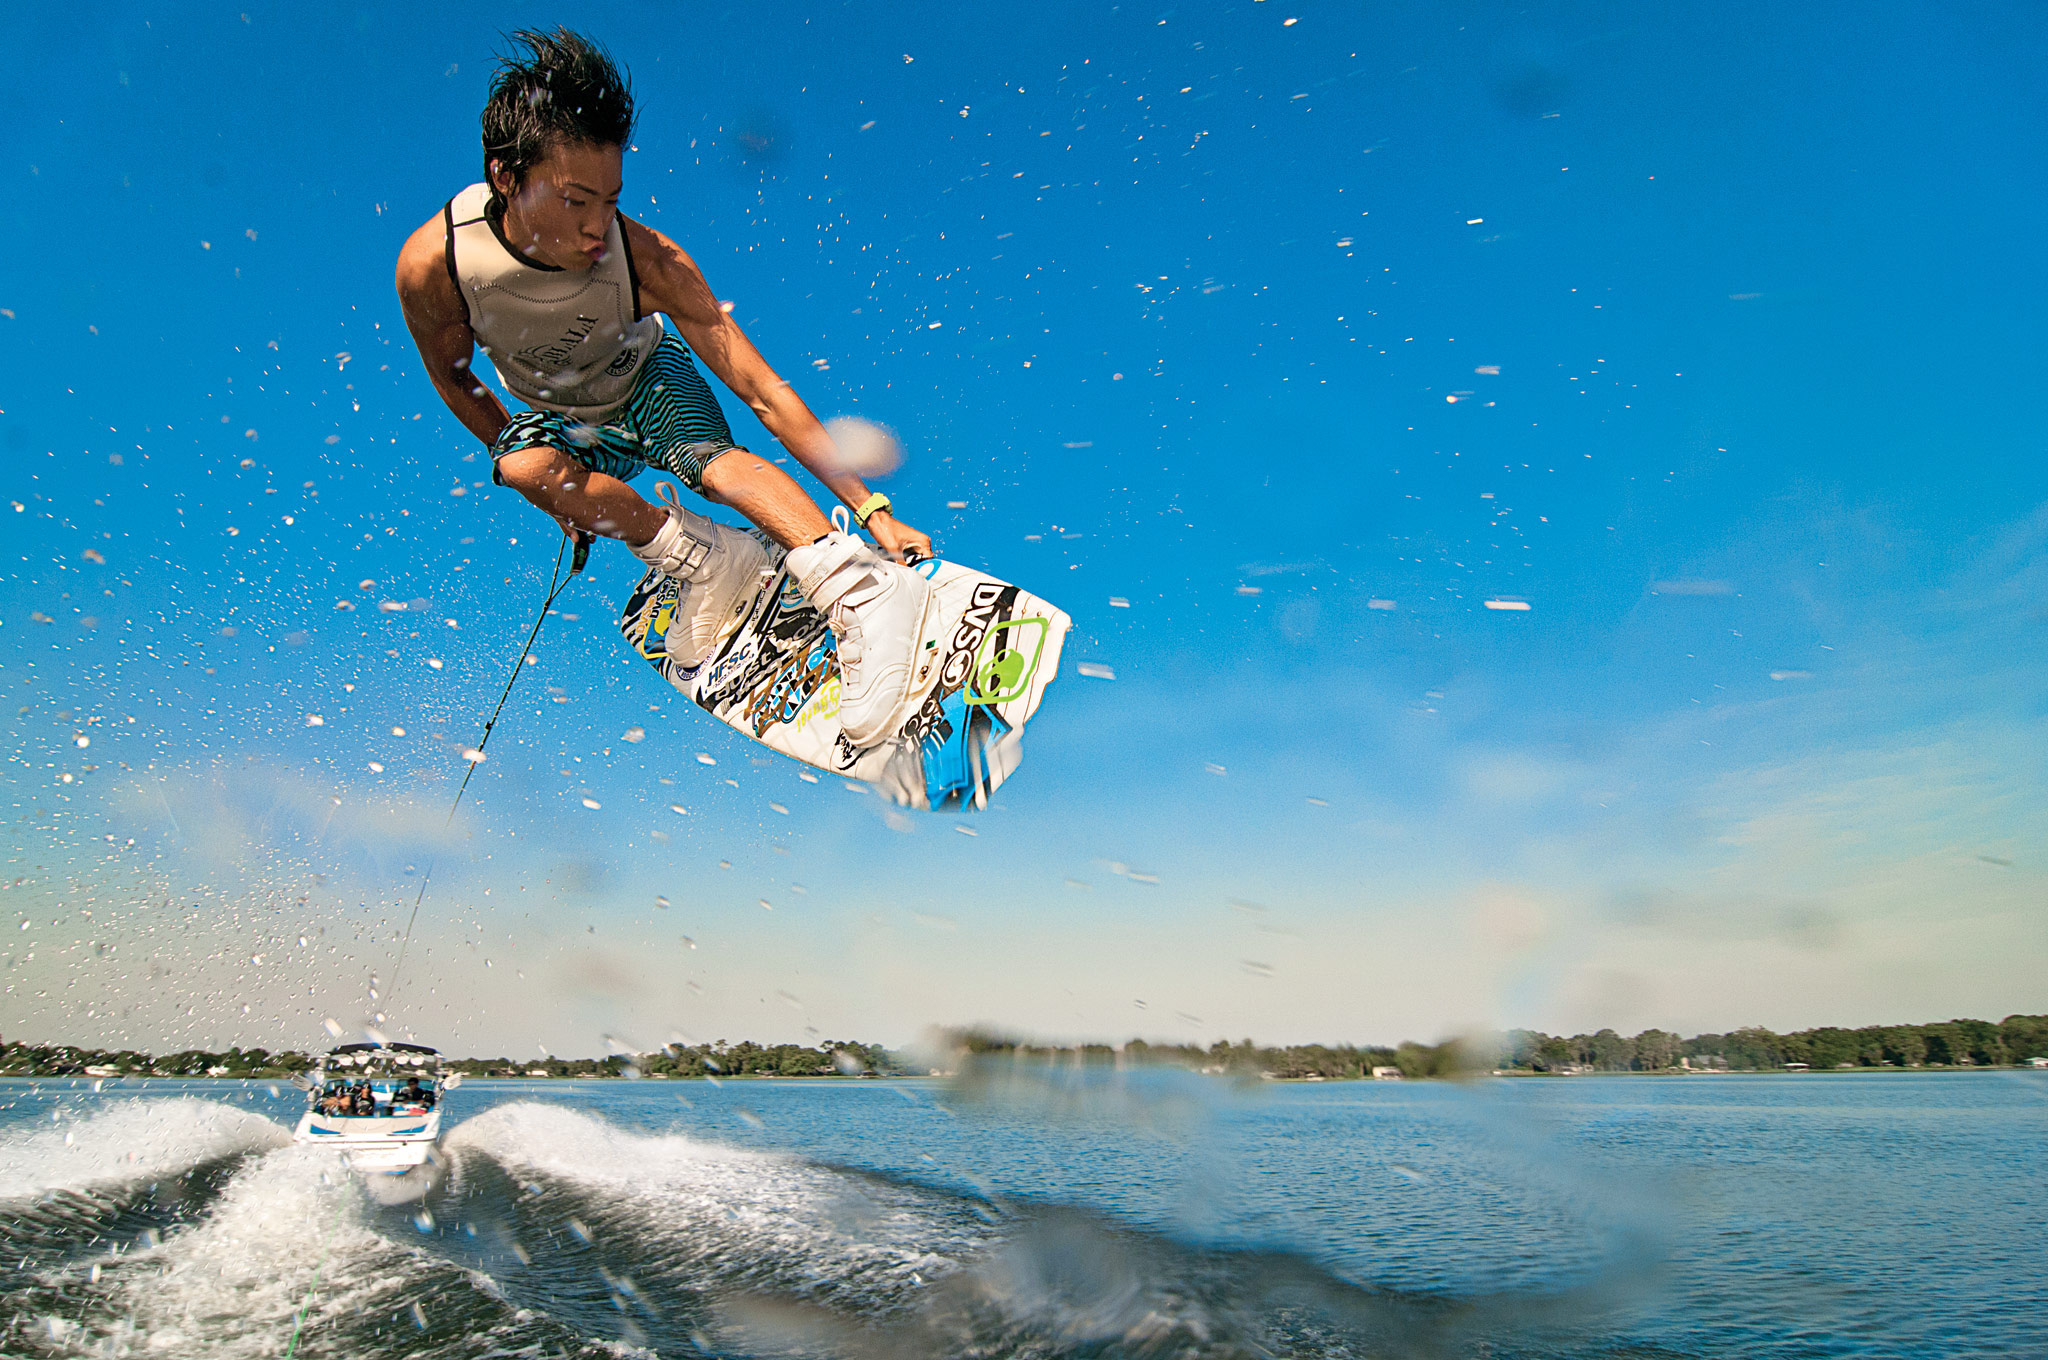 an introduction to wakeboarding a sport similar to surfing Snorkeling at islas secas is like embarking on a marine safari  the many bays,  caves and beaches you'll want to return to explore later, and introducing you to  the great diversity of flora and fauna found here wakeboarding adrenaline fans  will be thrilled to learn that islas secas offers wakeboarding new to the sport.